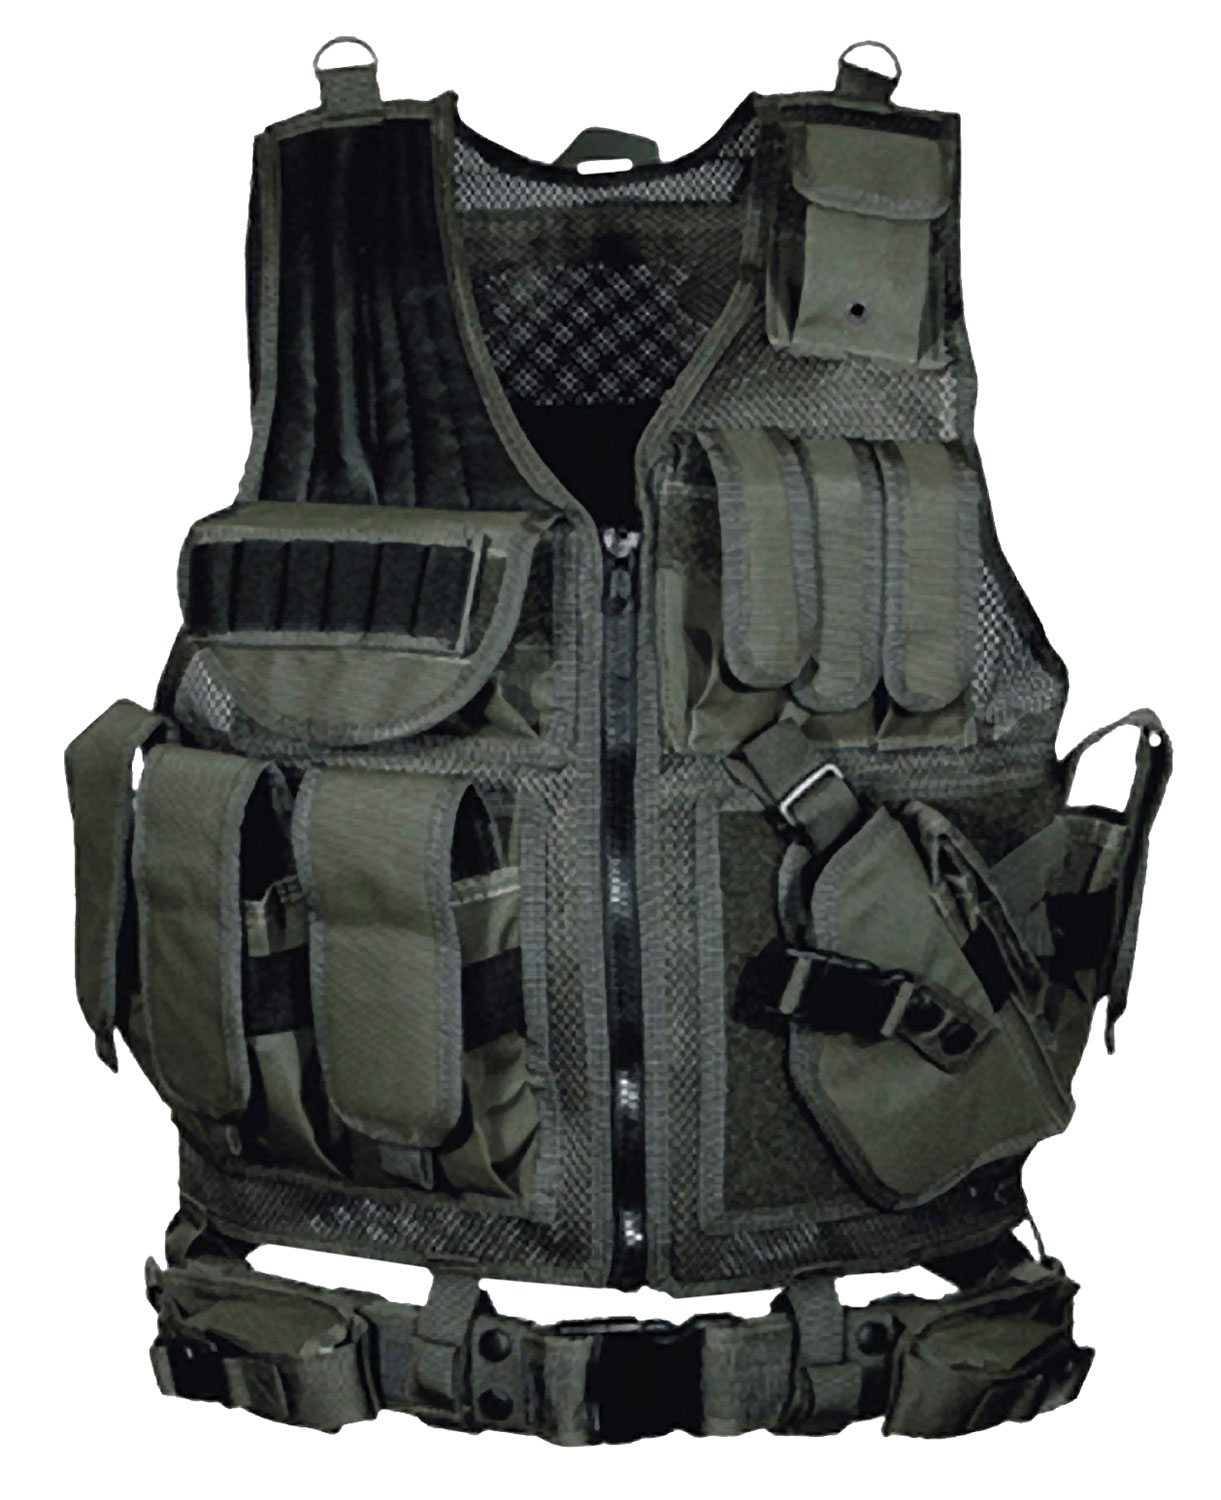 UTG PVC-V547BT Tactical Vest Nylon Mesh One Size Fits Most Black